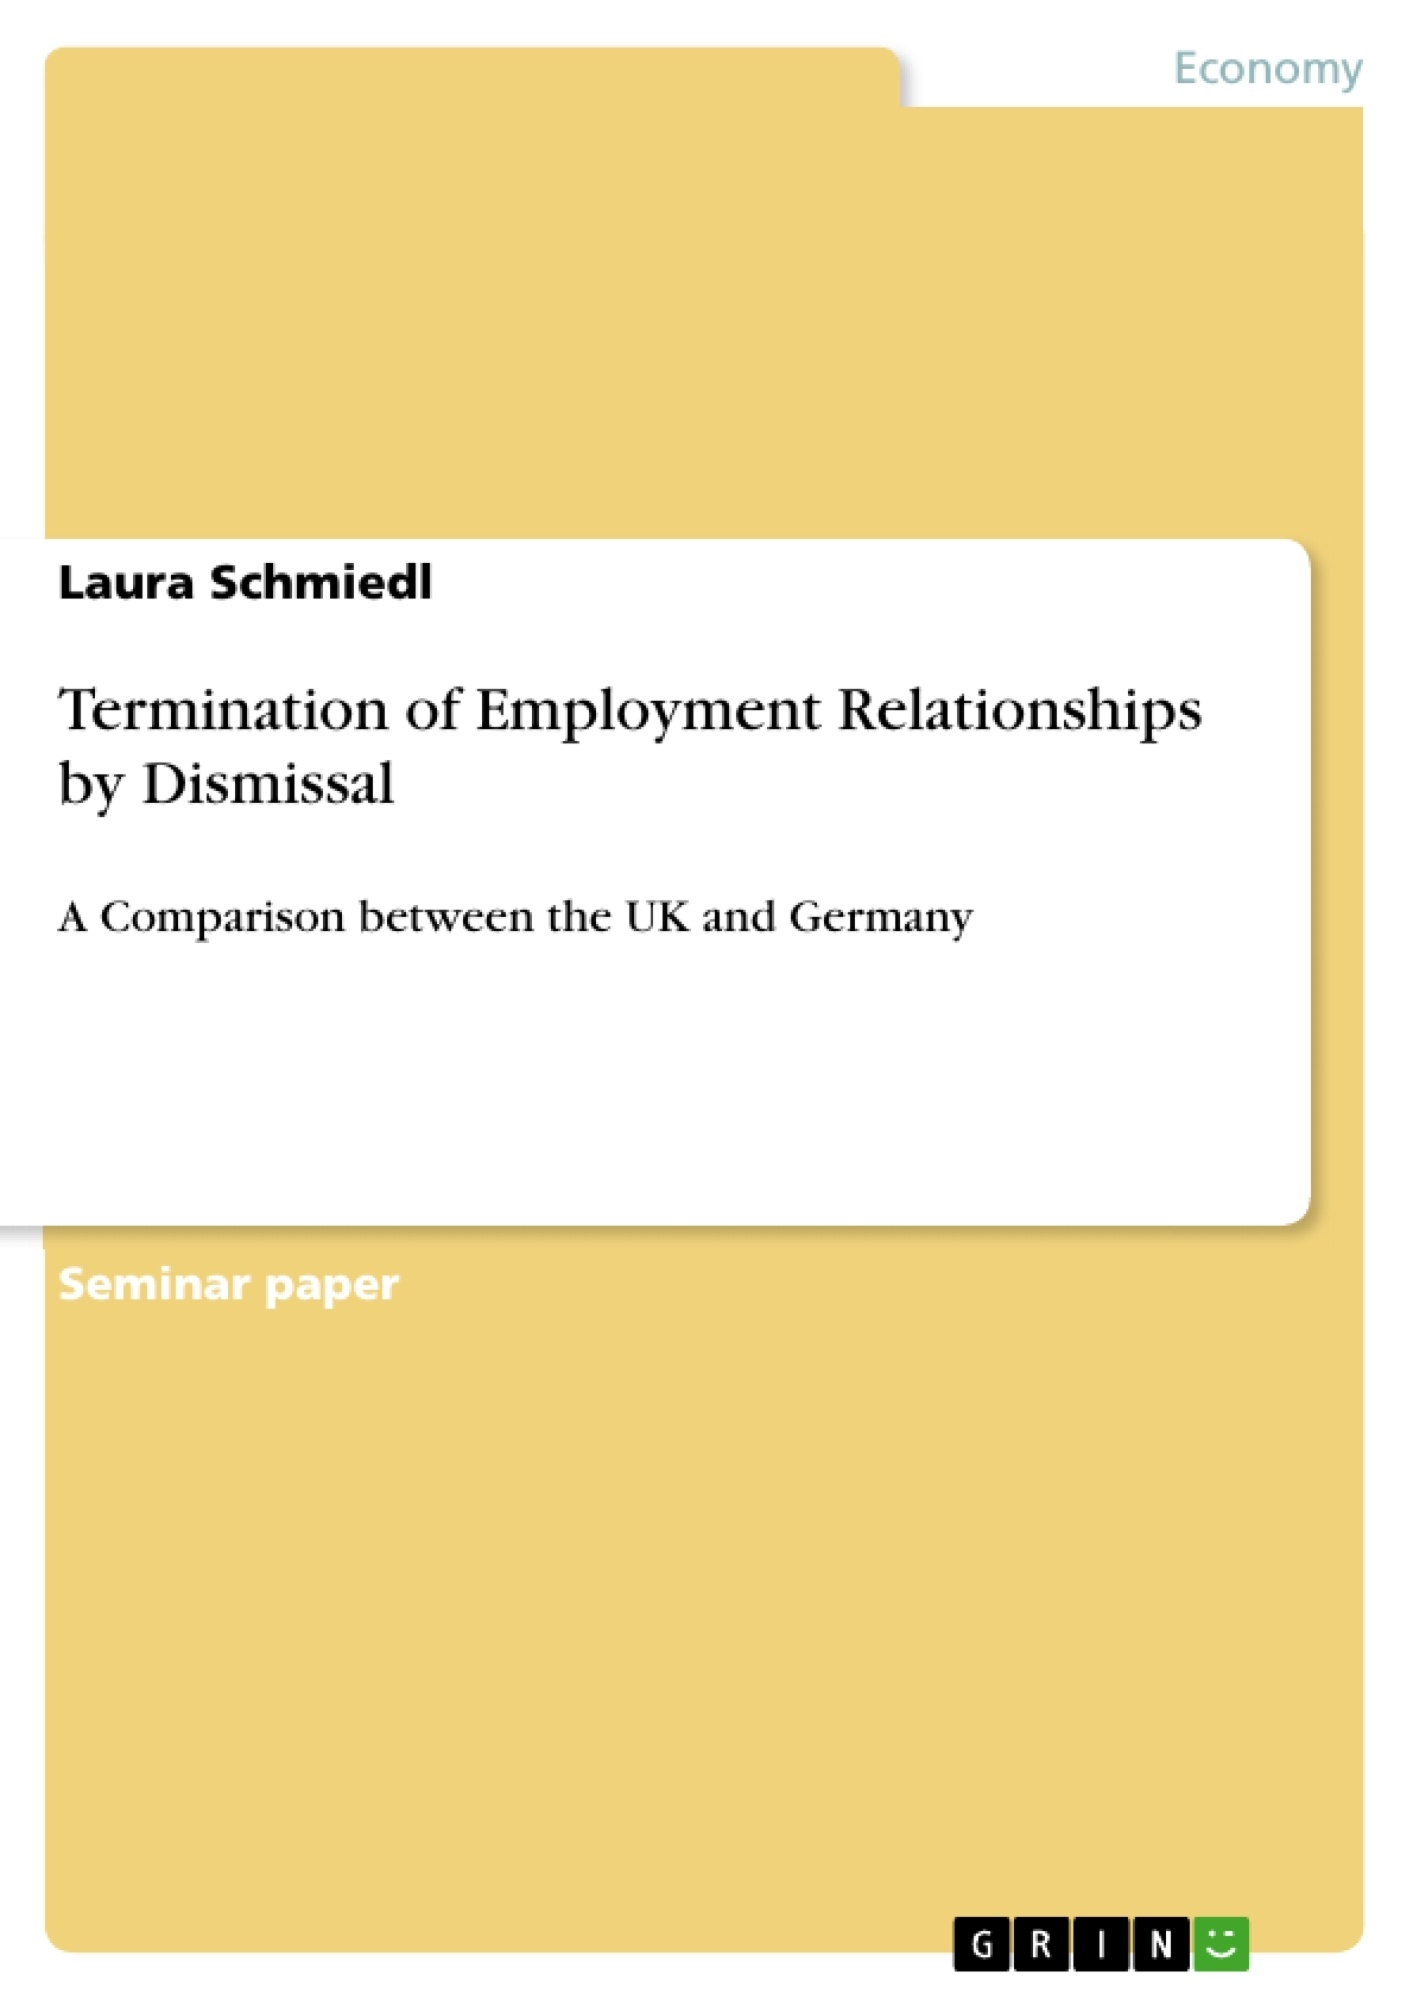 Title: Termination of Employment Relationships by Dismissal